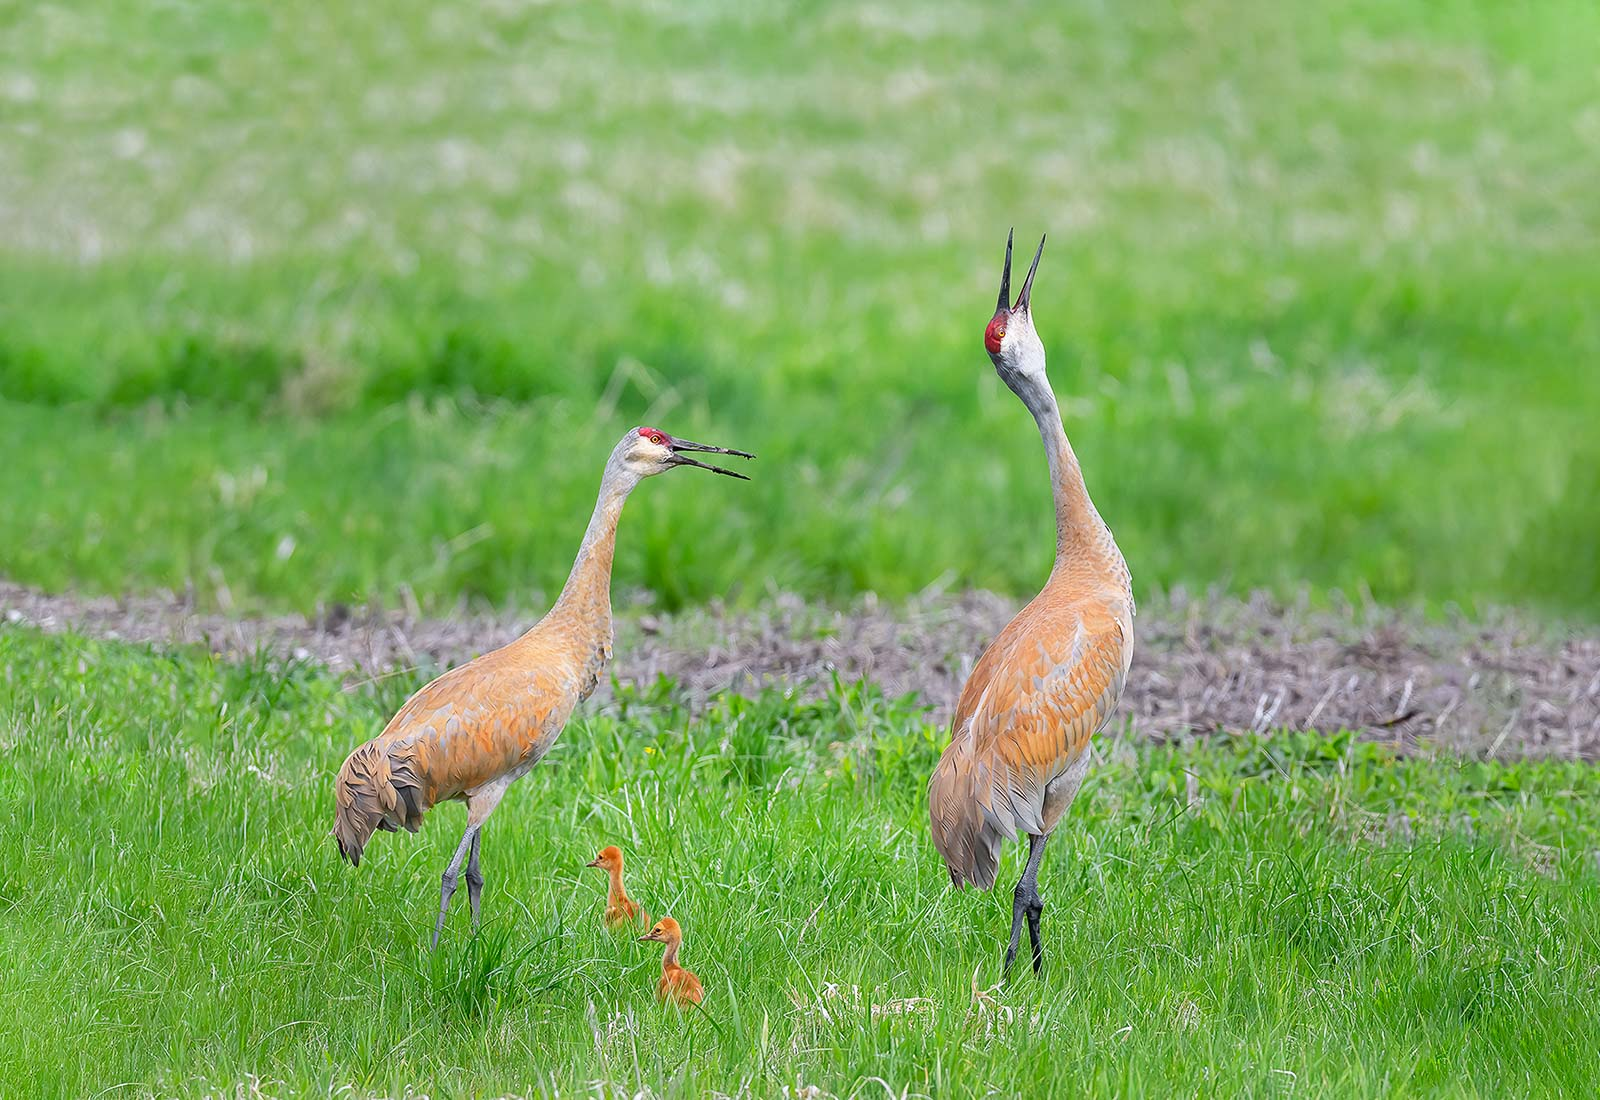 Sandhill Cranes let out their rattlin' bugle call, Kane County, MO